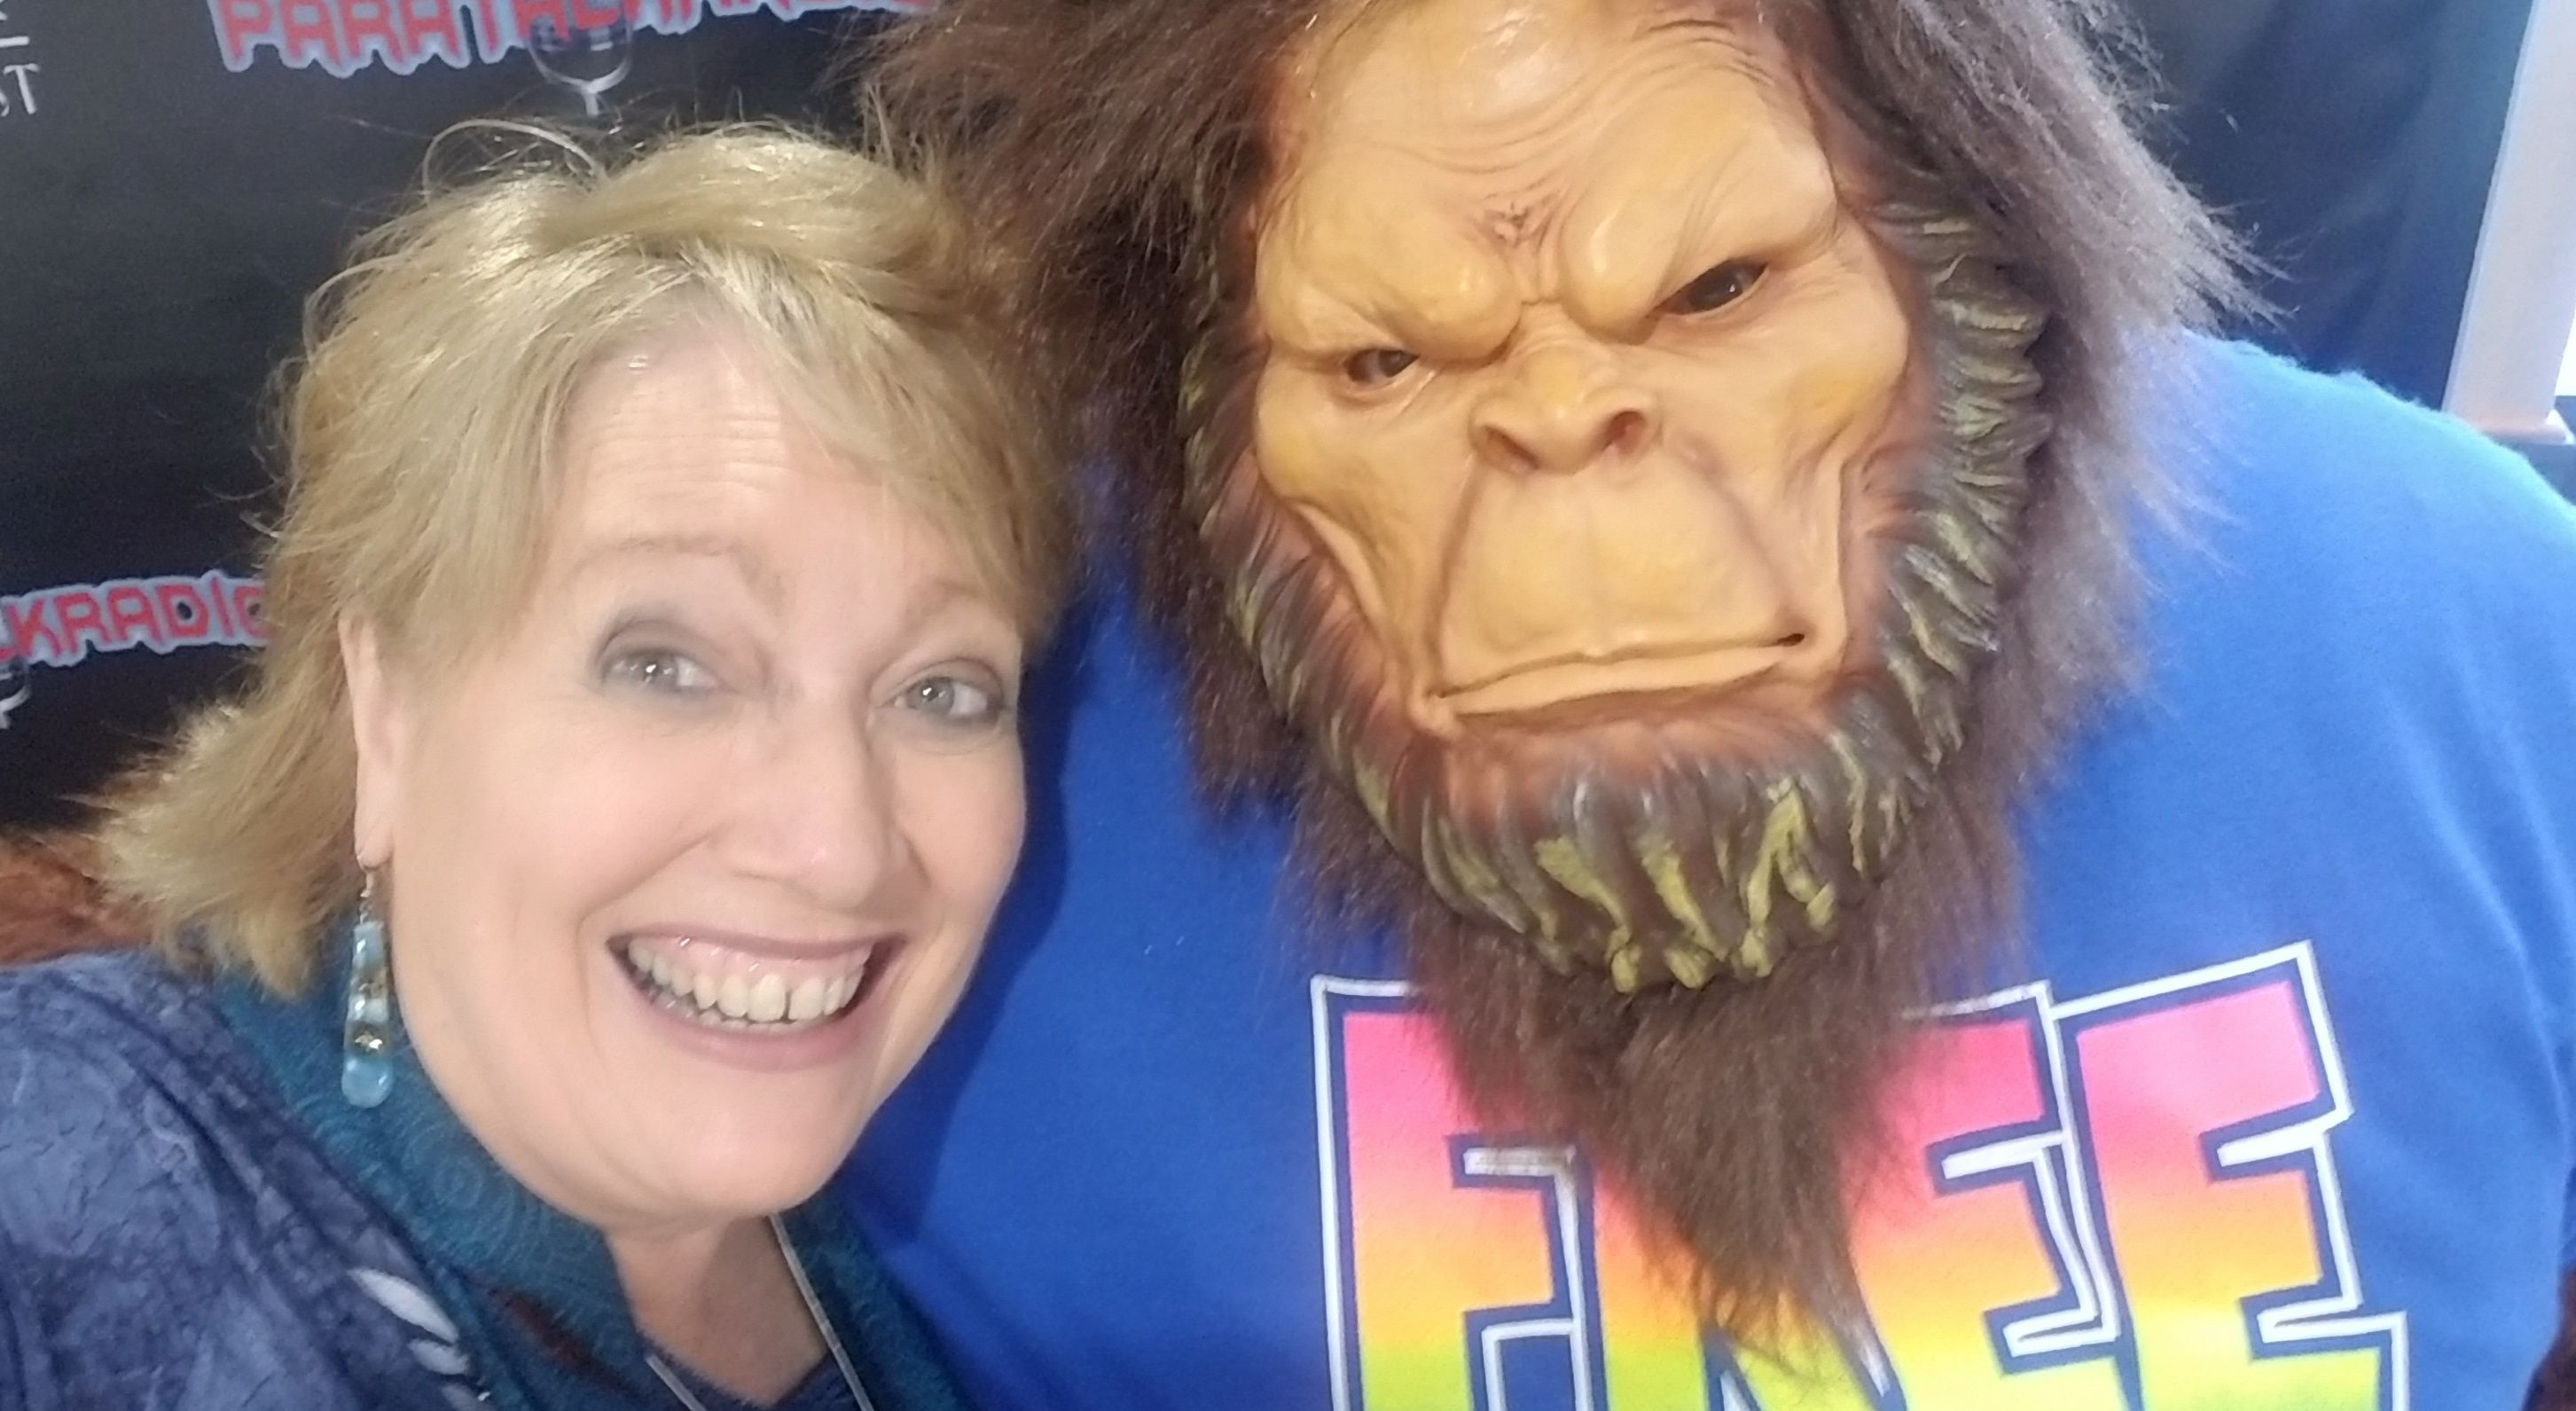 Buddy the BigFoot with Maria Schmidt from Haunted Journeys